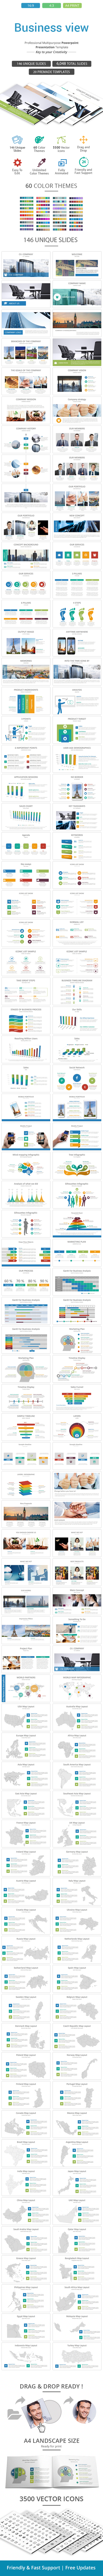 Business view PowerPoint Presentation Template - Business PowerPoint Templates